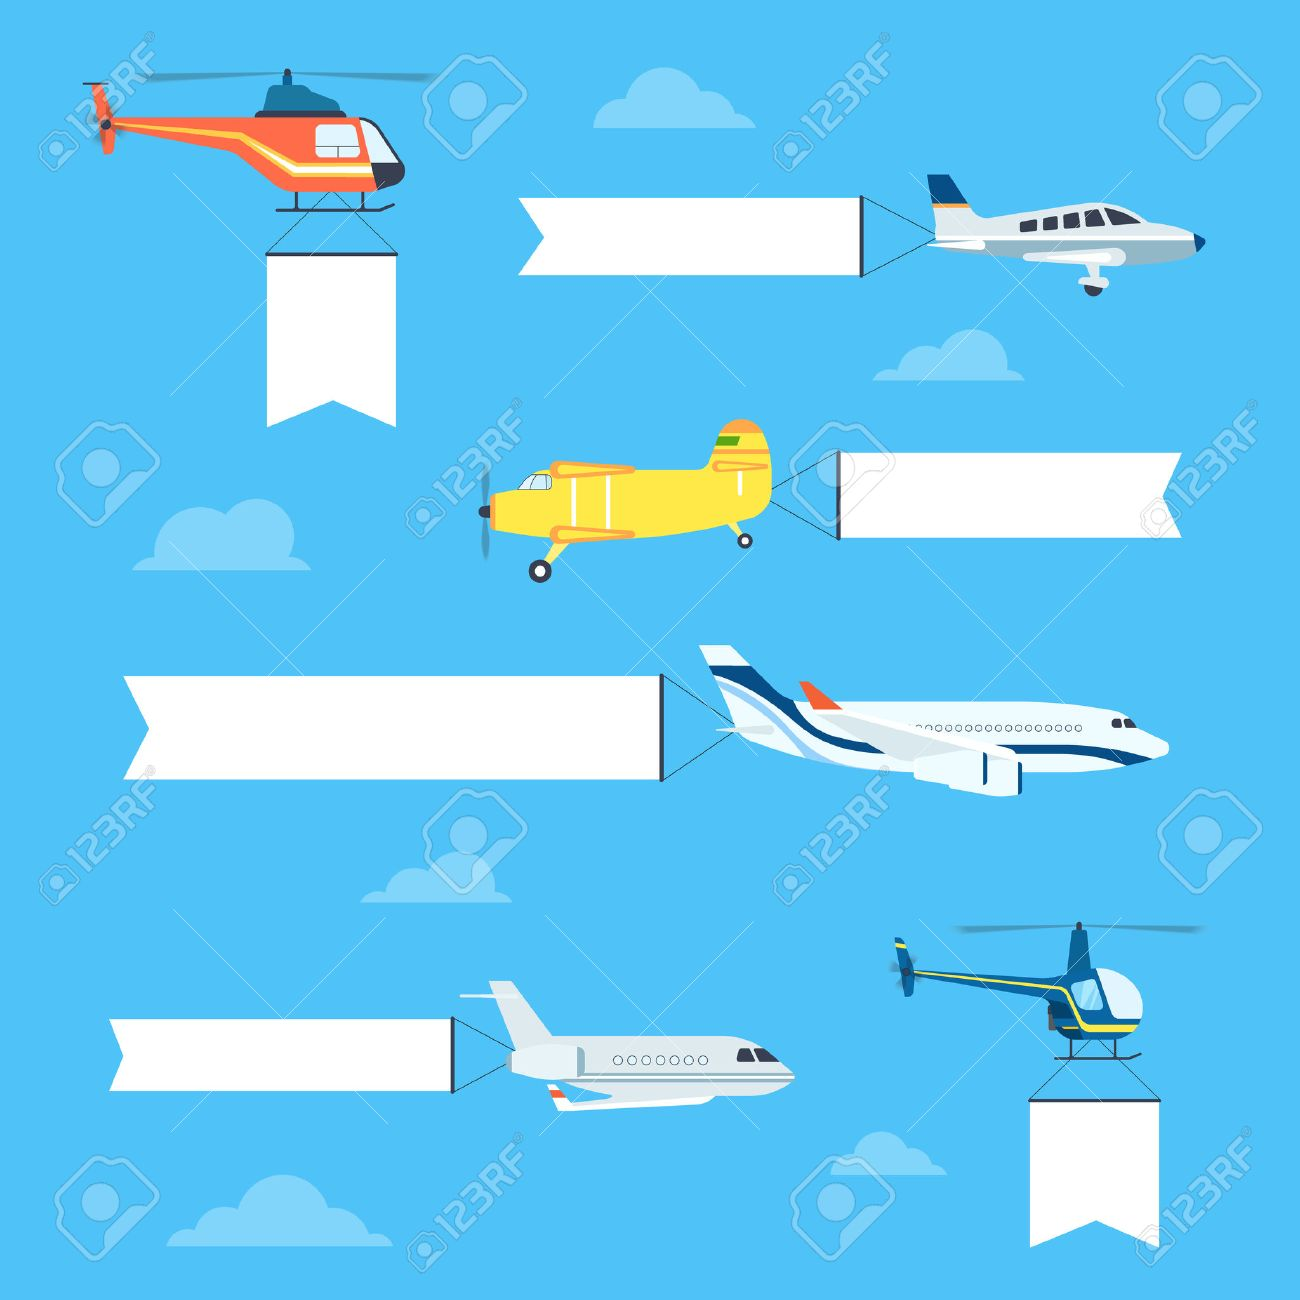 flat airplanes and helicopters set with white ribbon for text